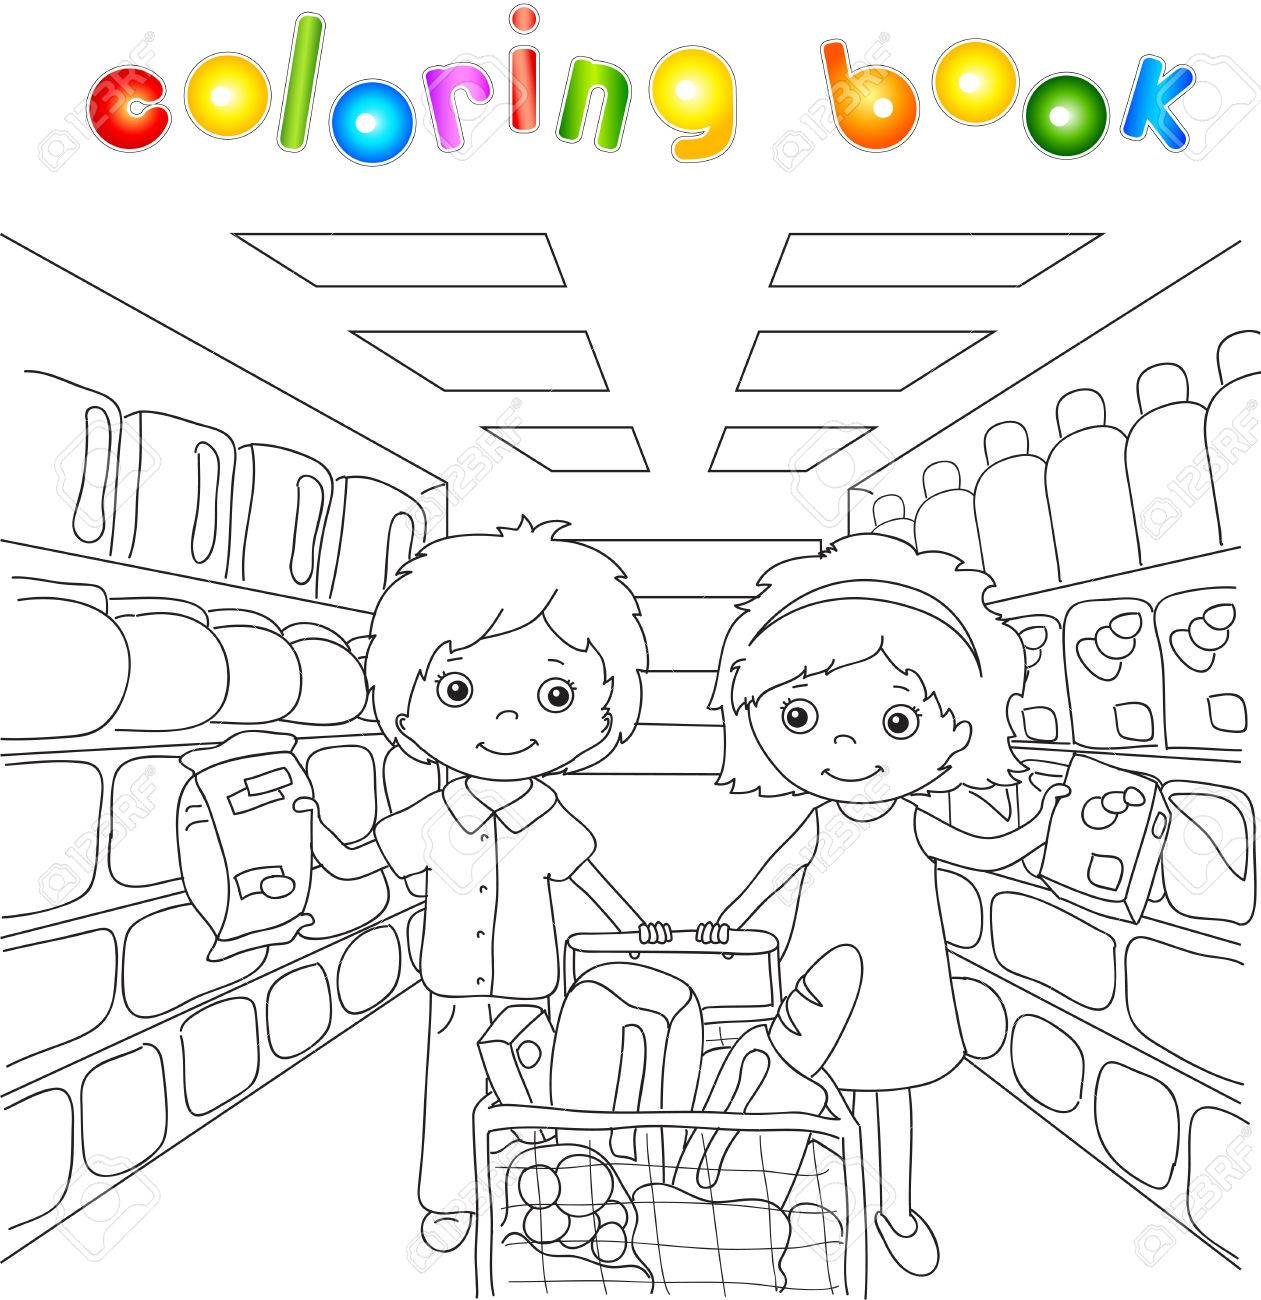 A Boy And A Girl Are Shopping In A Store. Coloring Book For Children ...